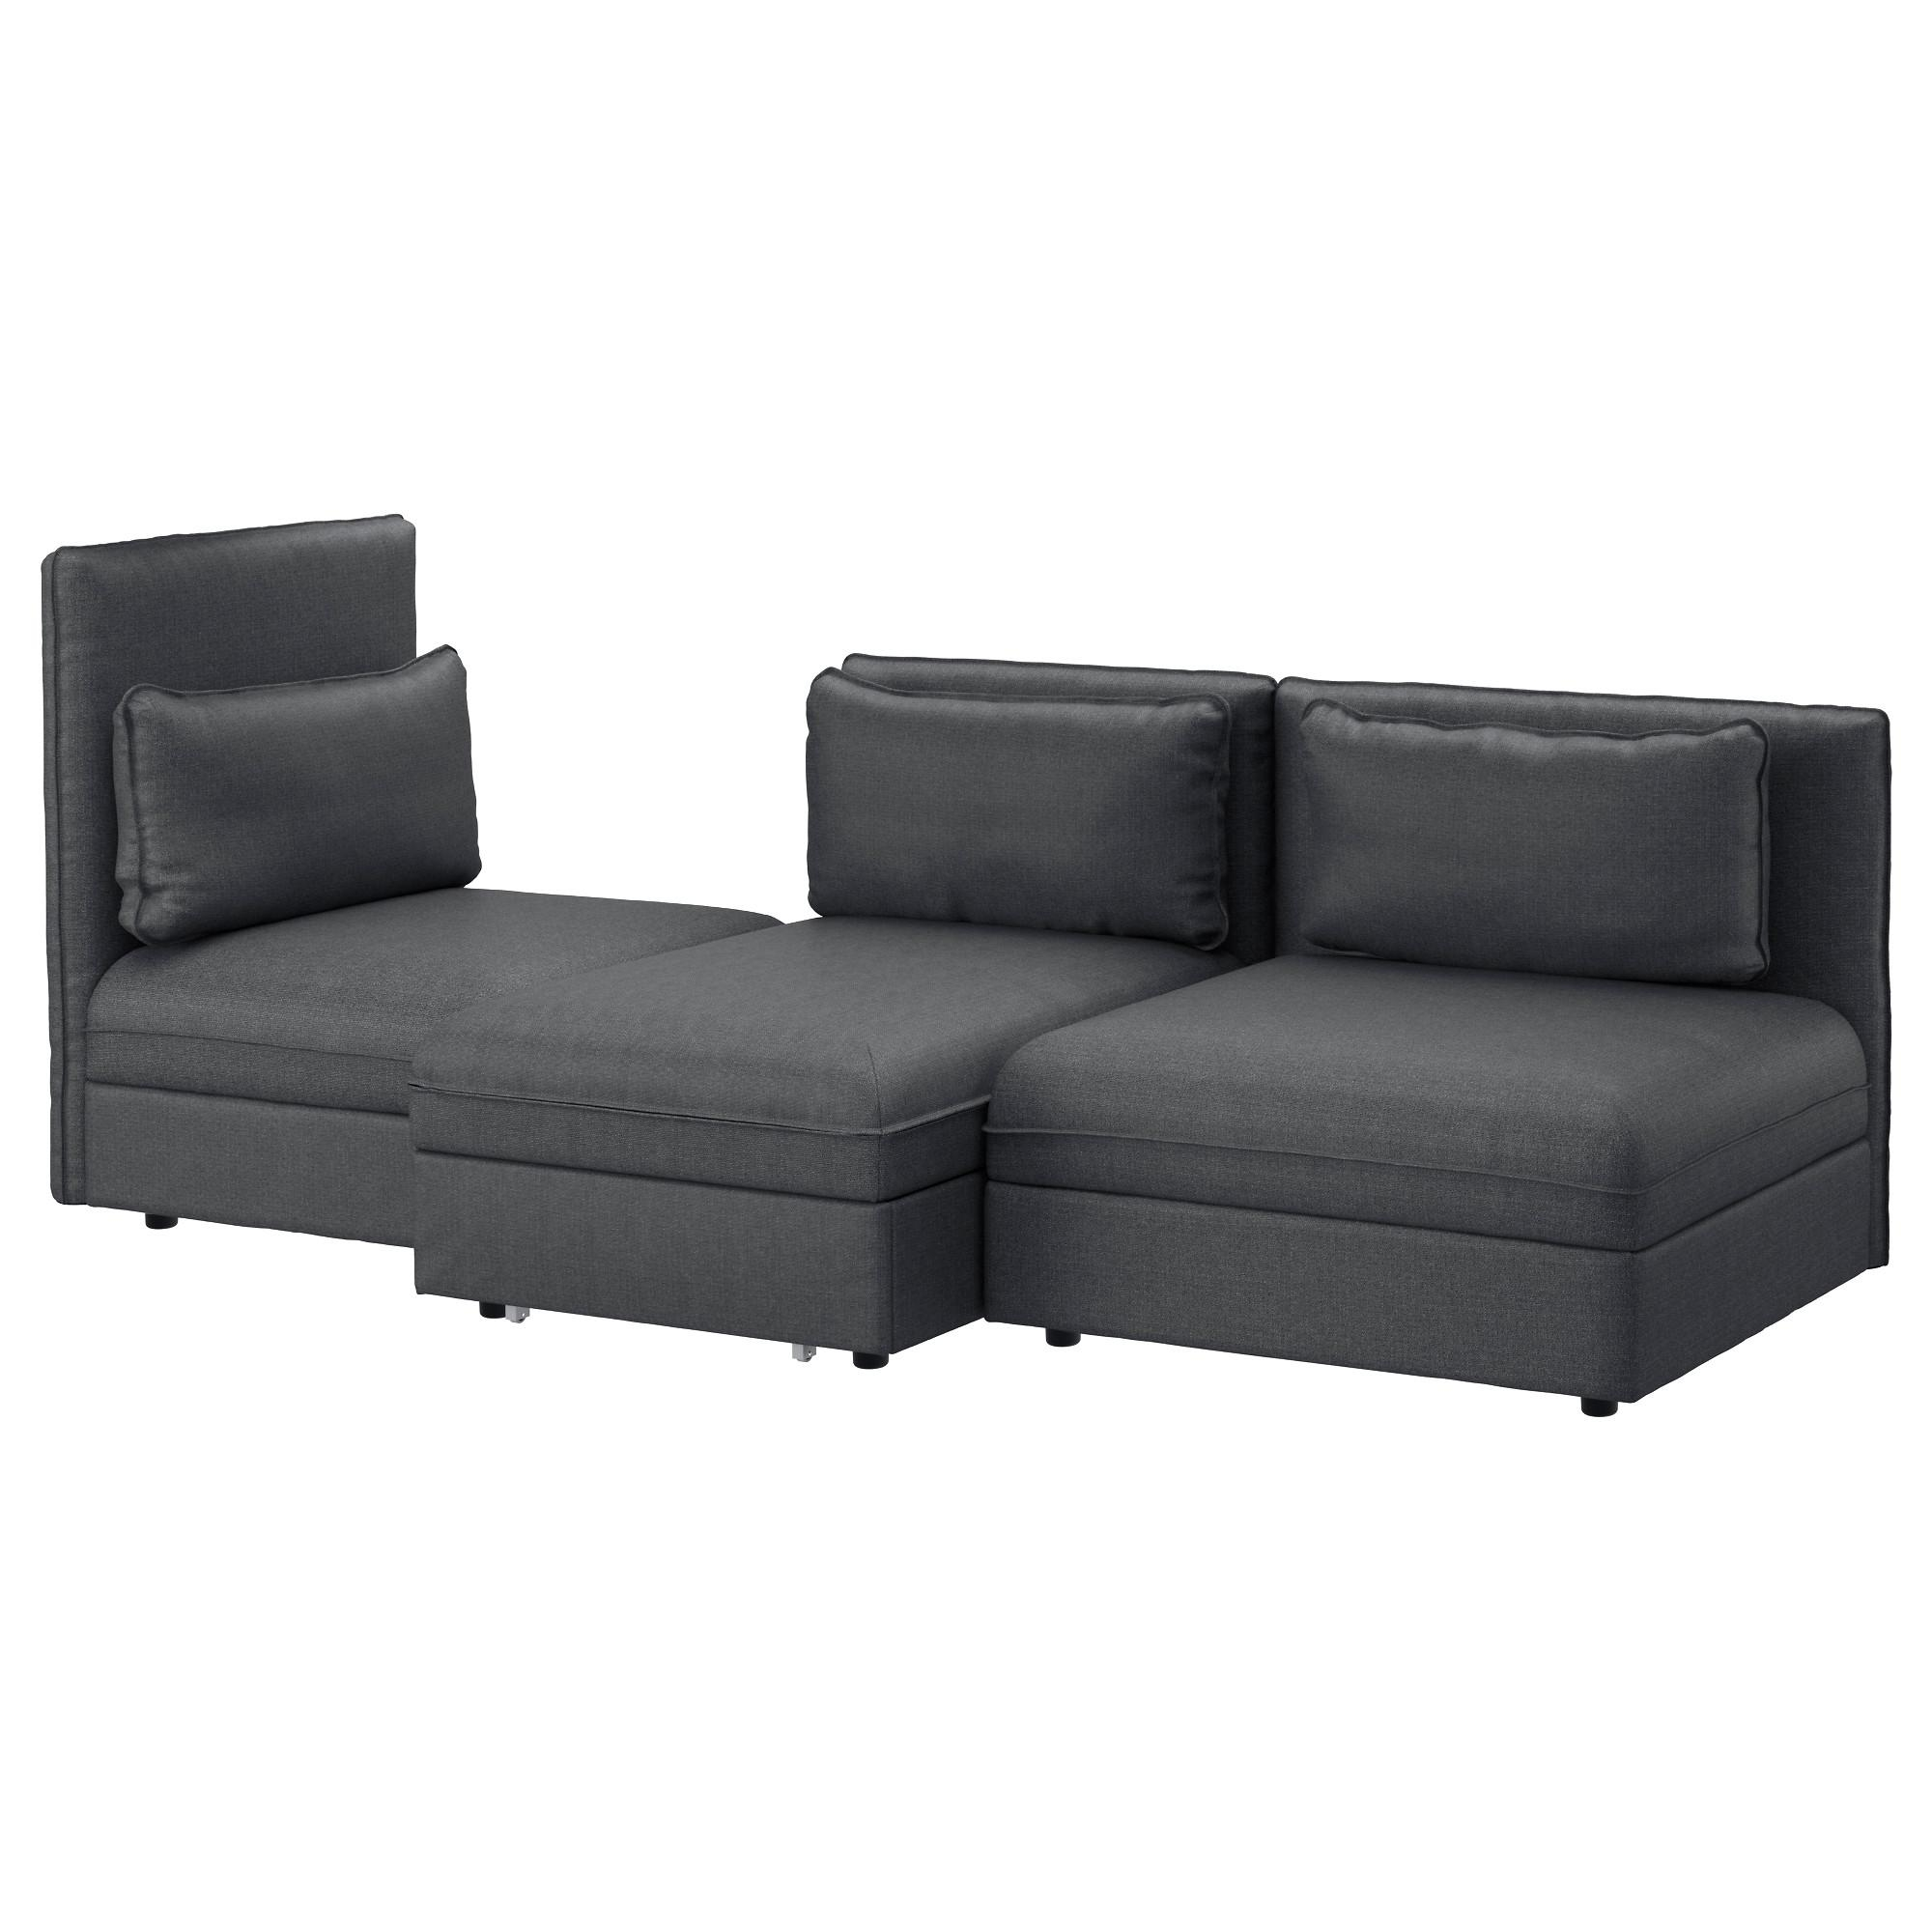 Vallentuna 3 Seat Sofa With Bed Hillared Dark Grey – Ikea With Regard To Sofas With Beds (View 12 of 22)